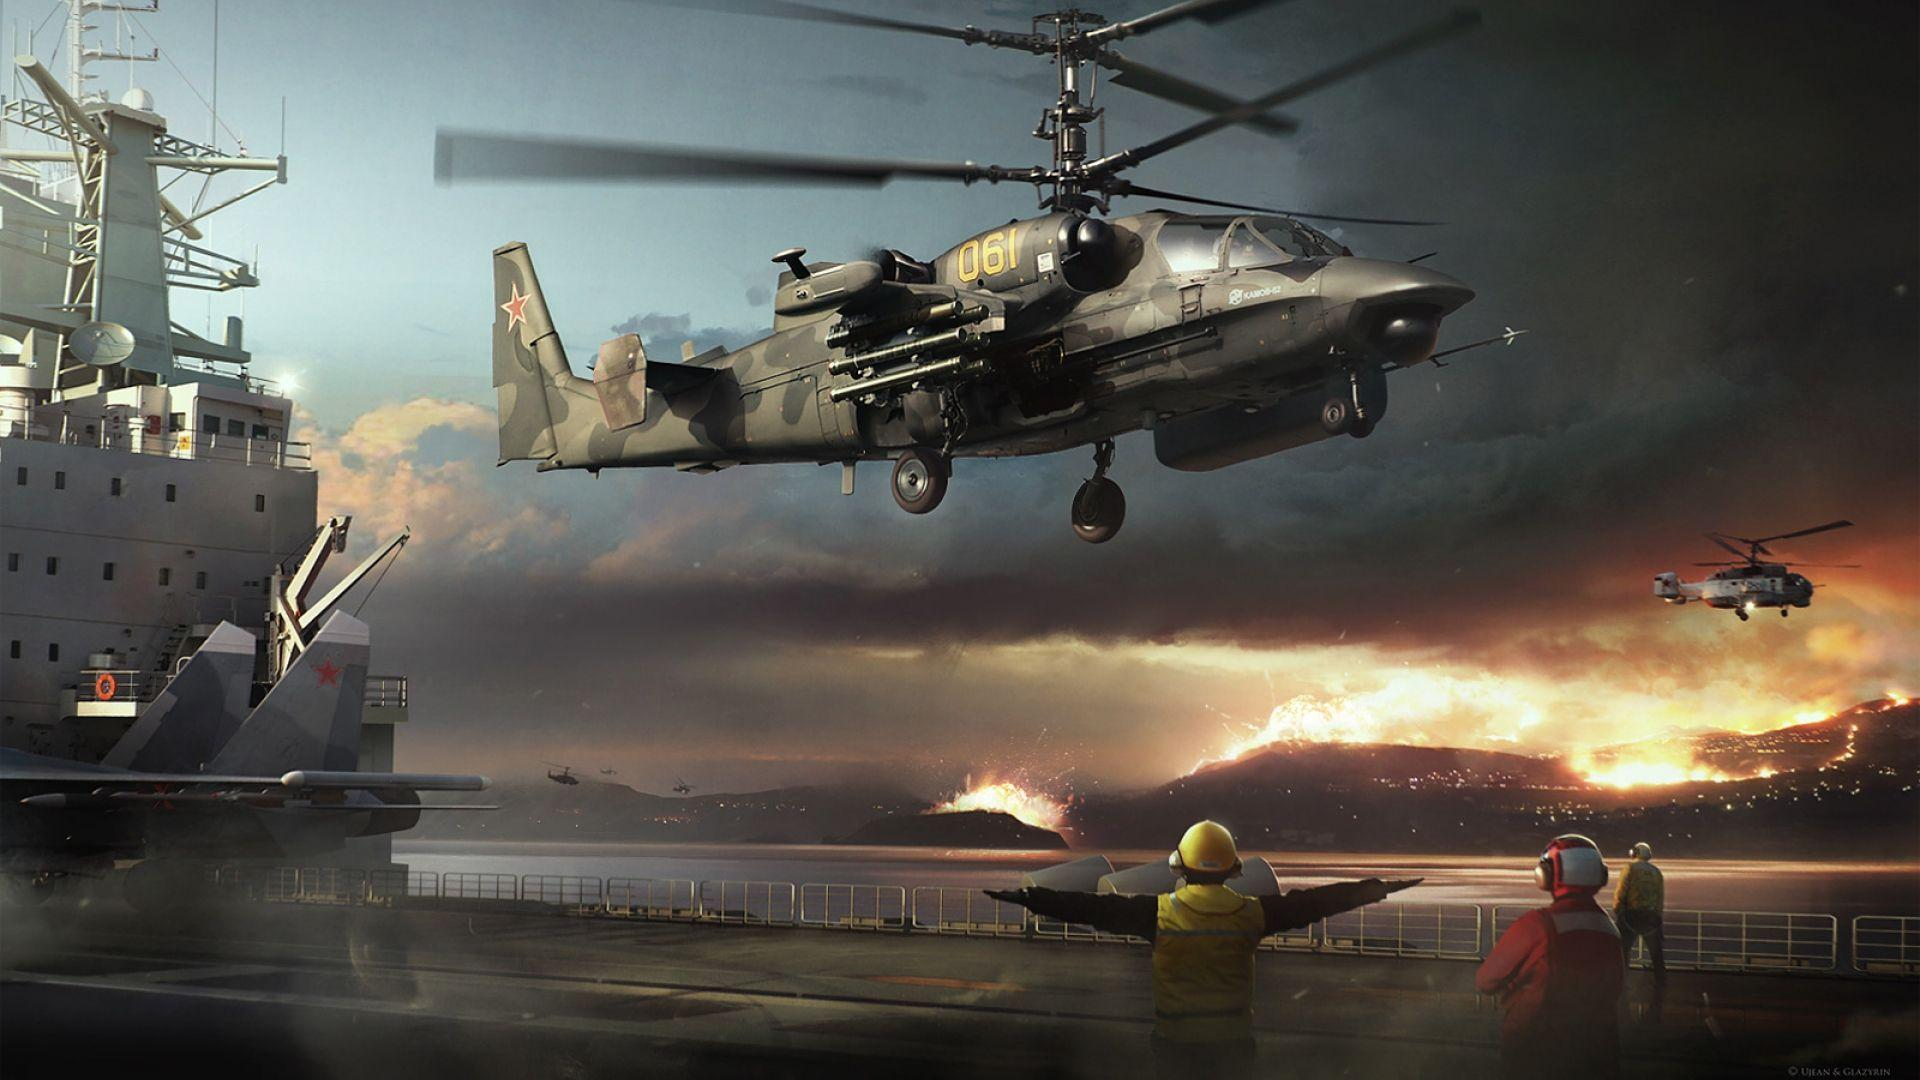 Helicopter Concept Art wallpapers 136730